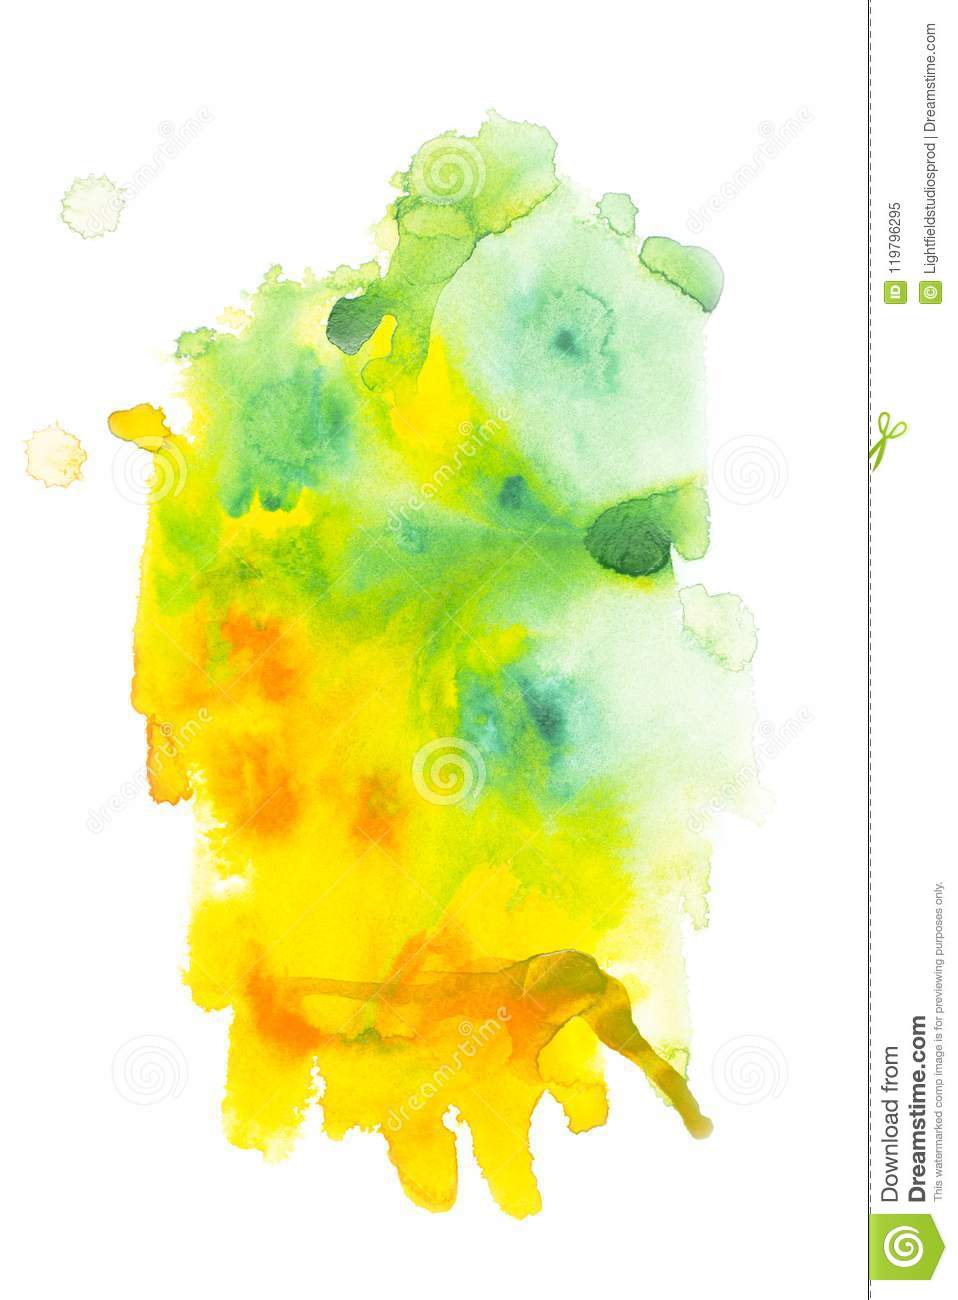 Abstract painting with green and yellow paint blots